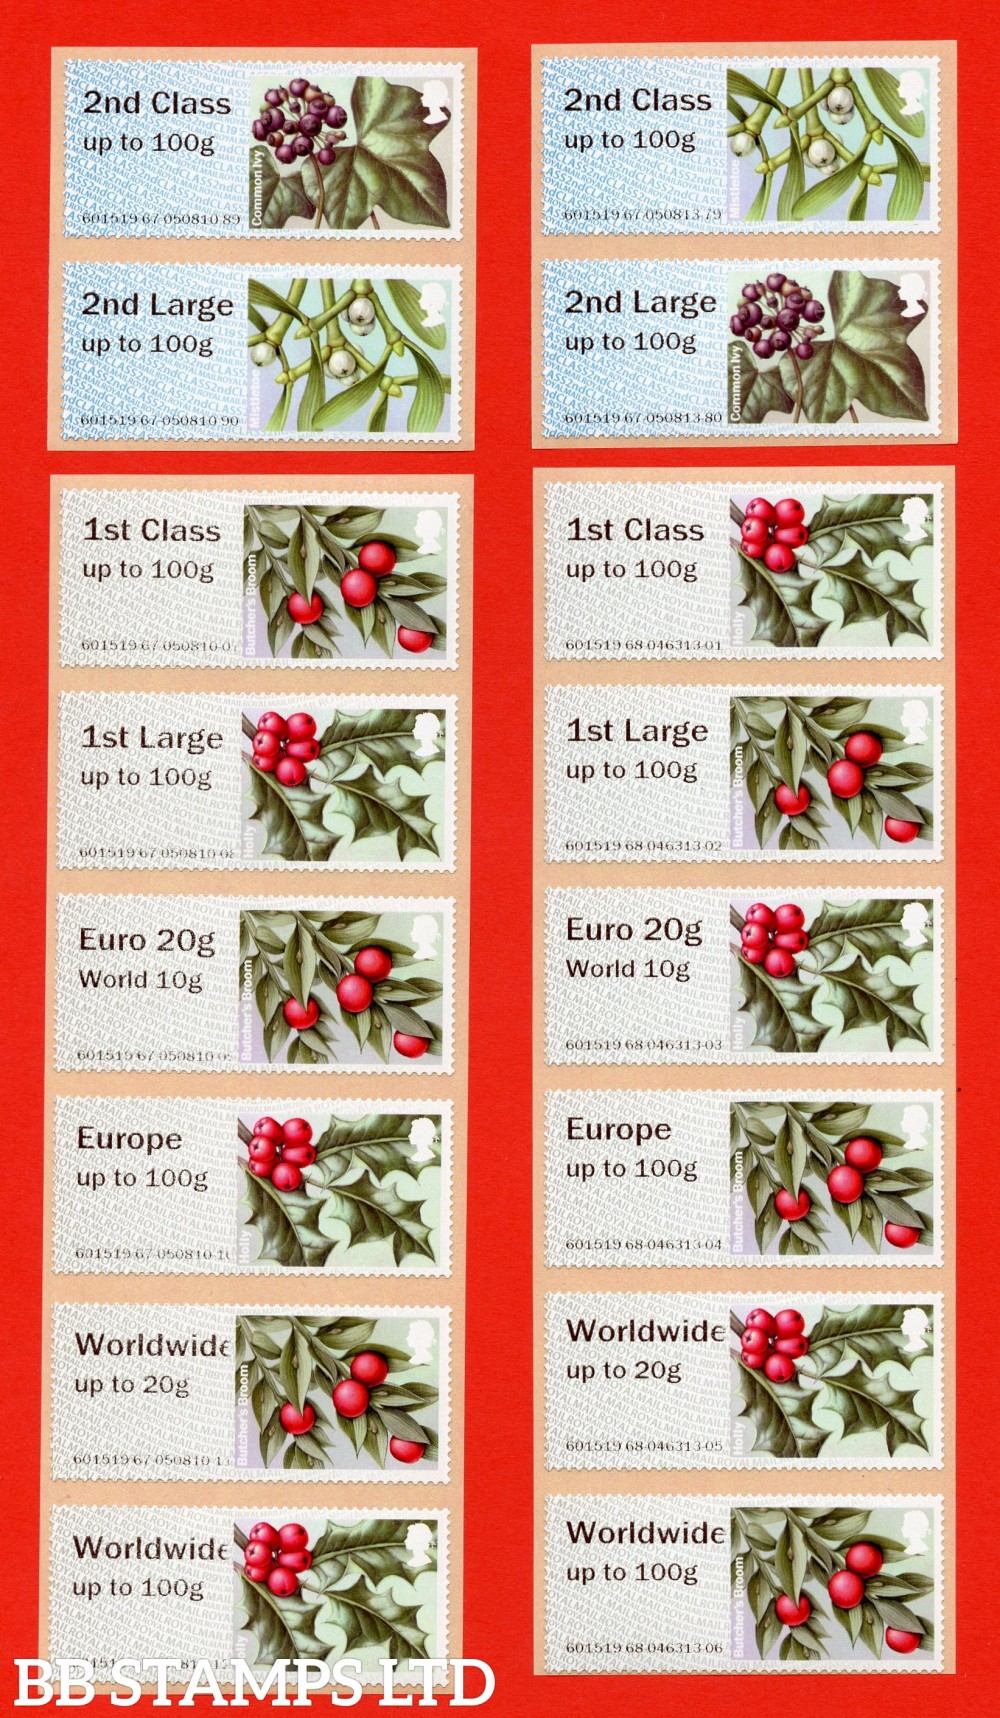 2017 Winter Greenery 2019 issue (2ndCLASS in background/greenish grey) 2nd - W/Wide 100g: full set of 16, Type IIA, CL19/R19Y, (BK29,P6)